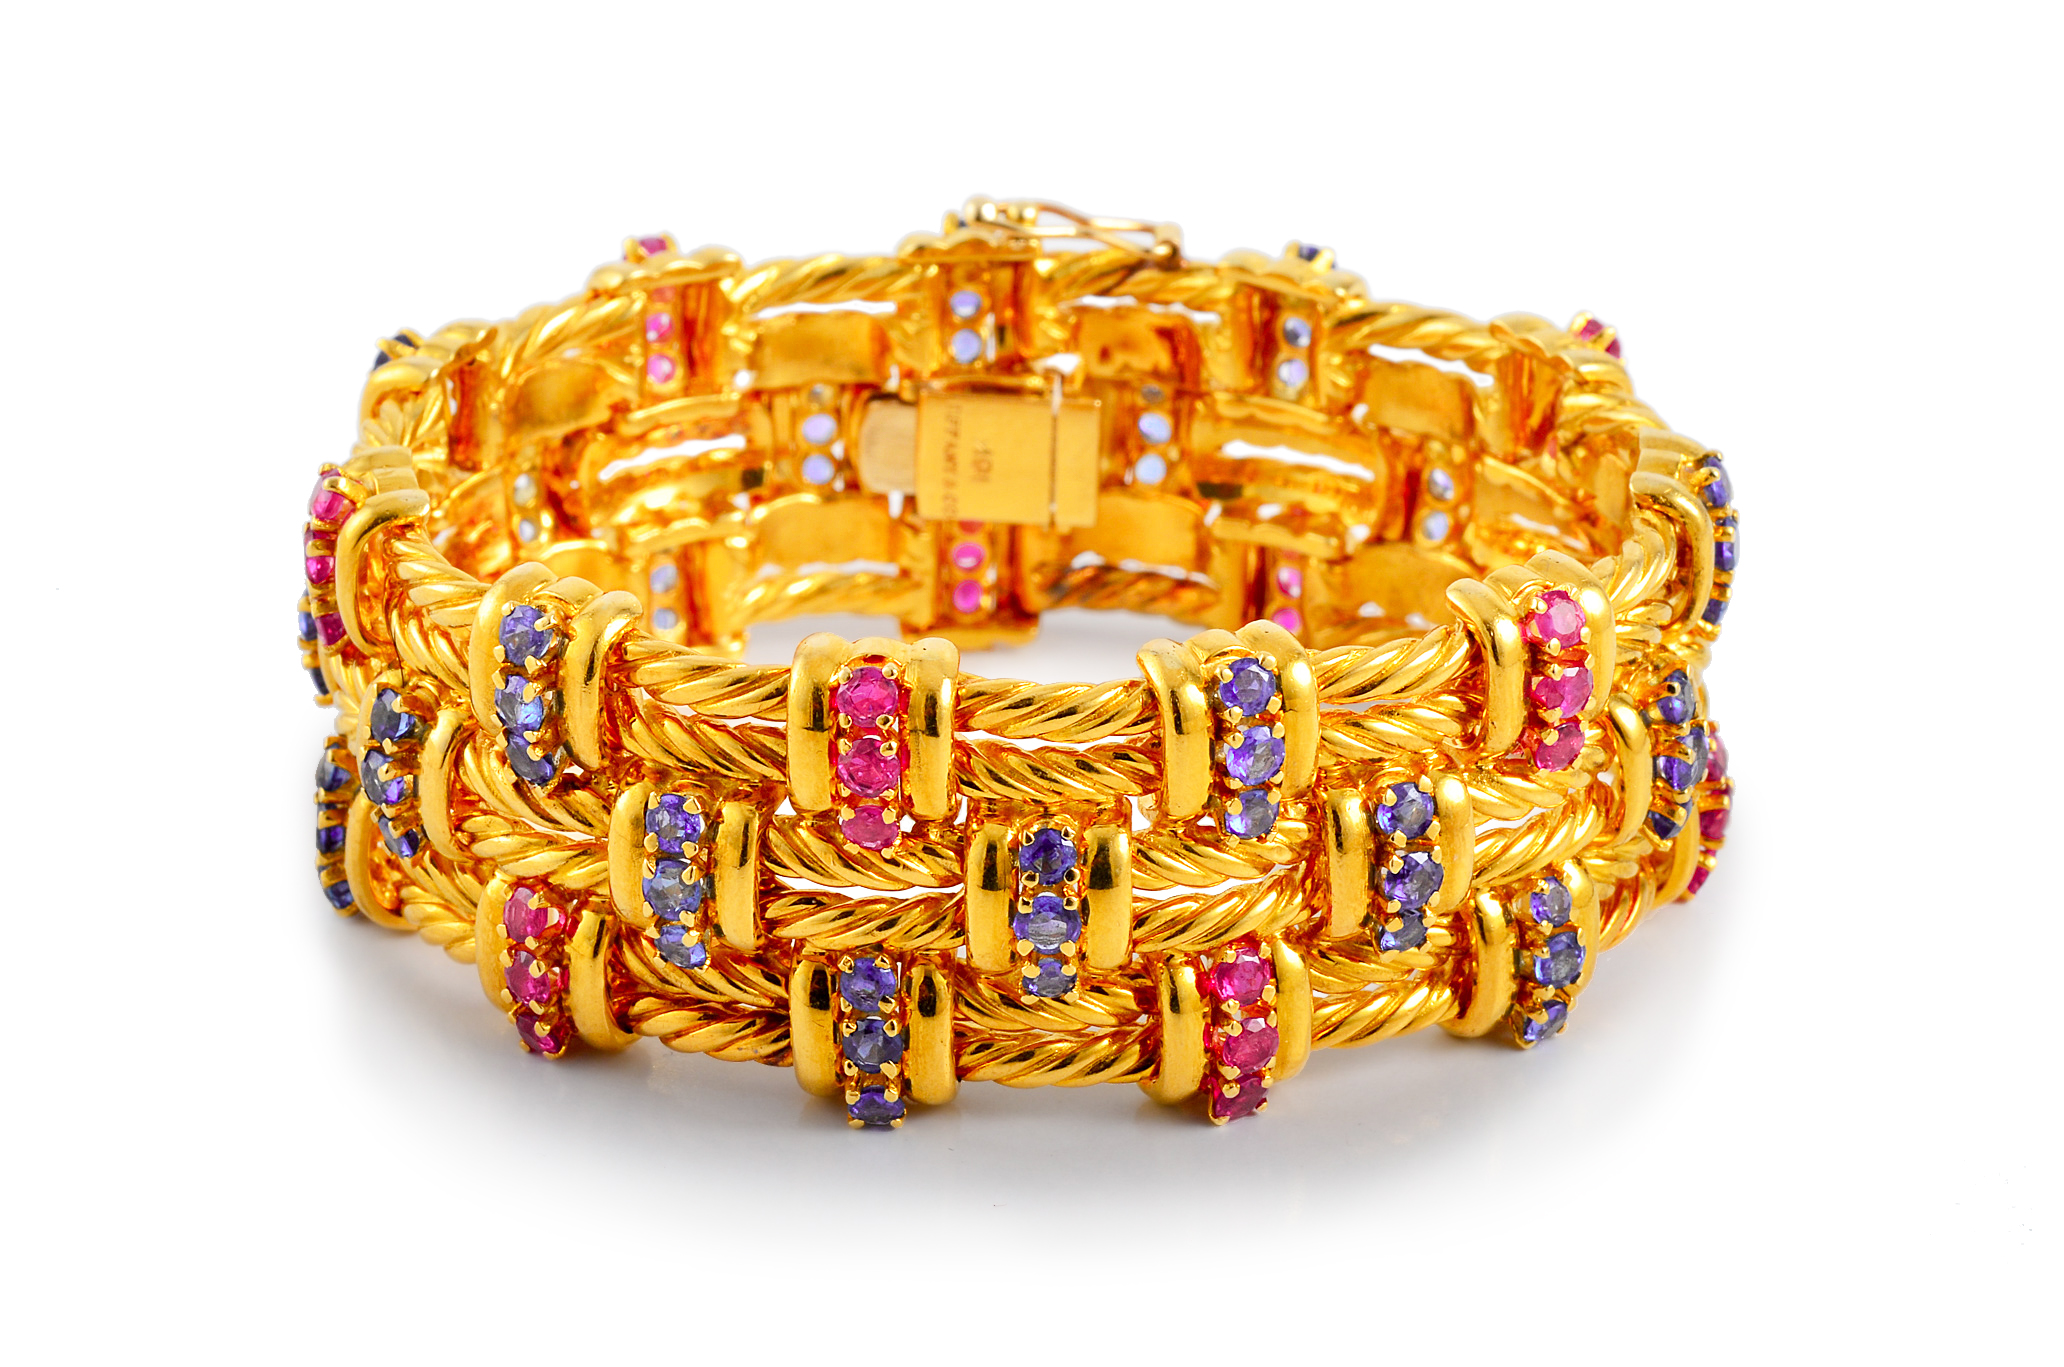 Tiffany Ruby and Sapphire Gold Bracelet